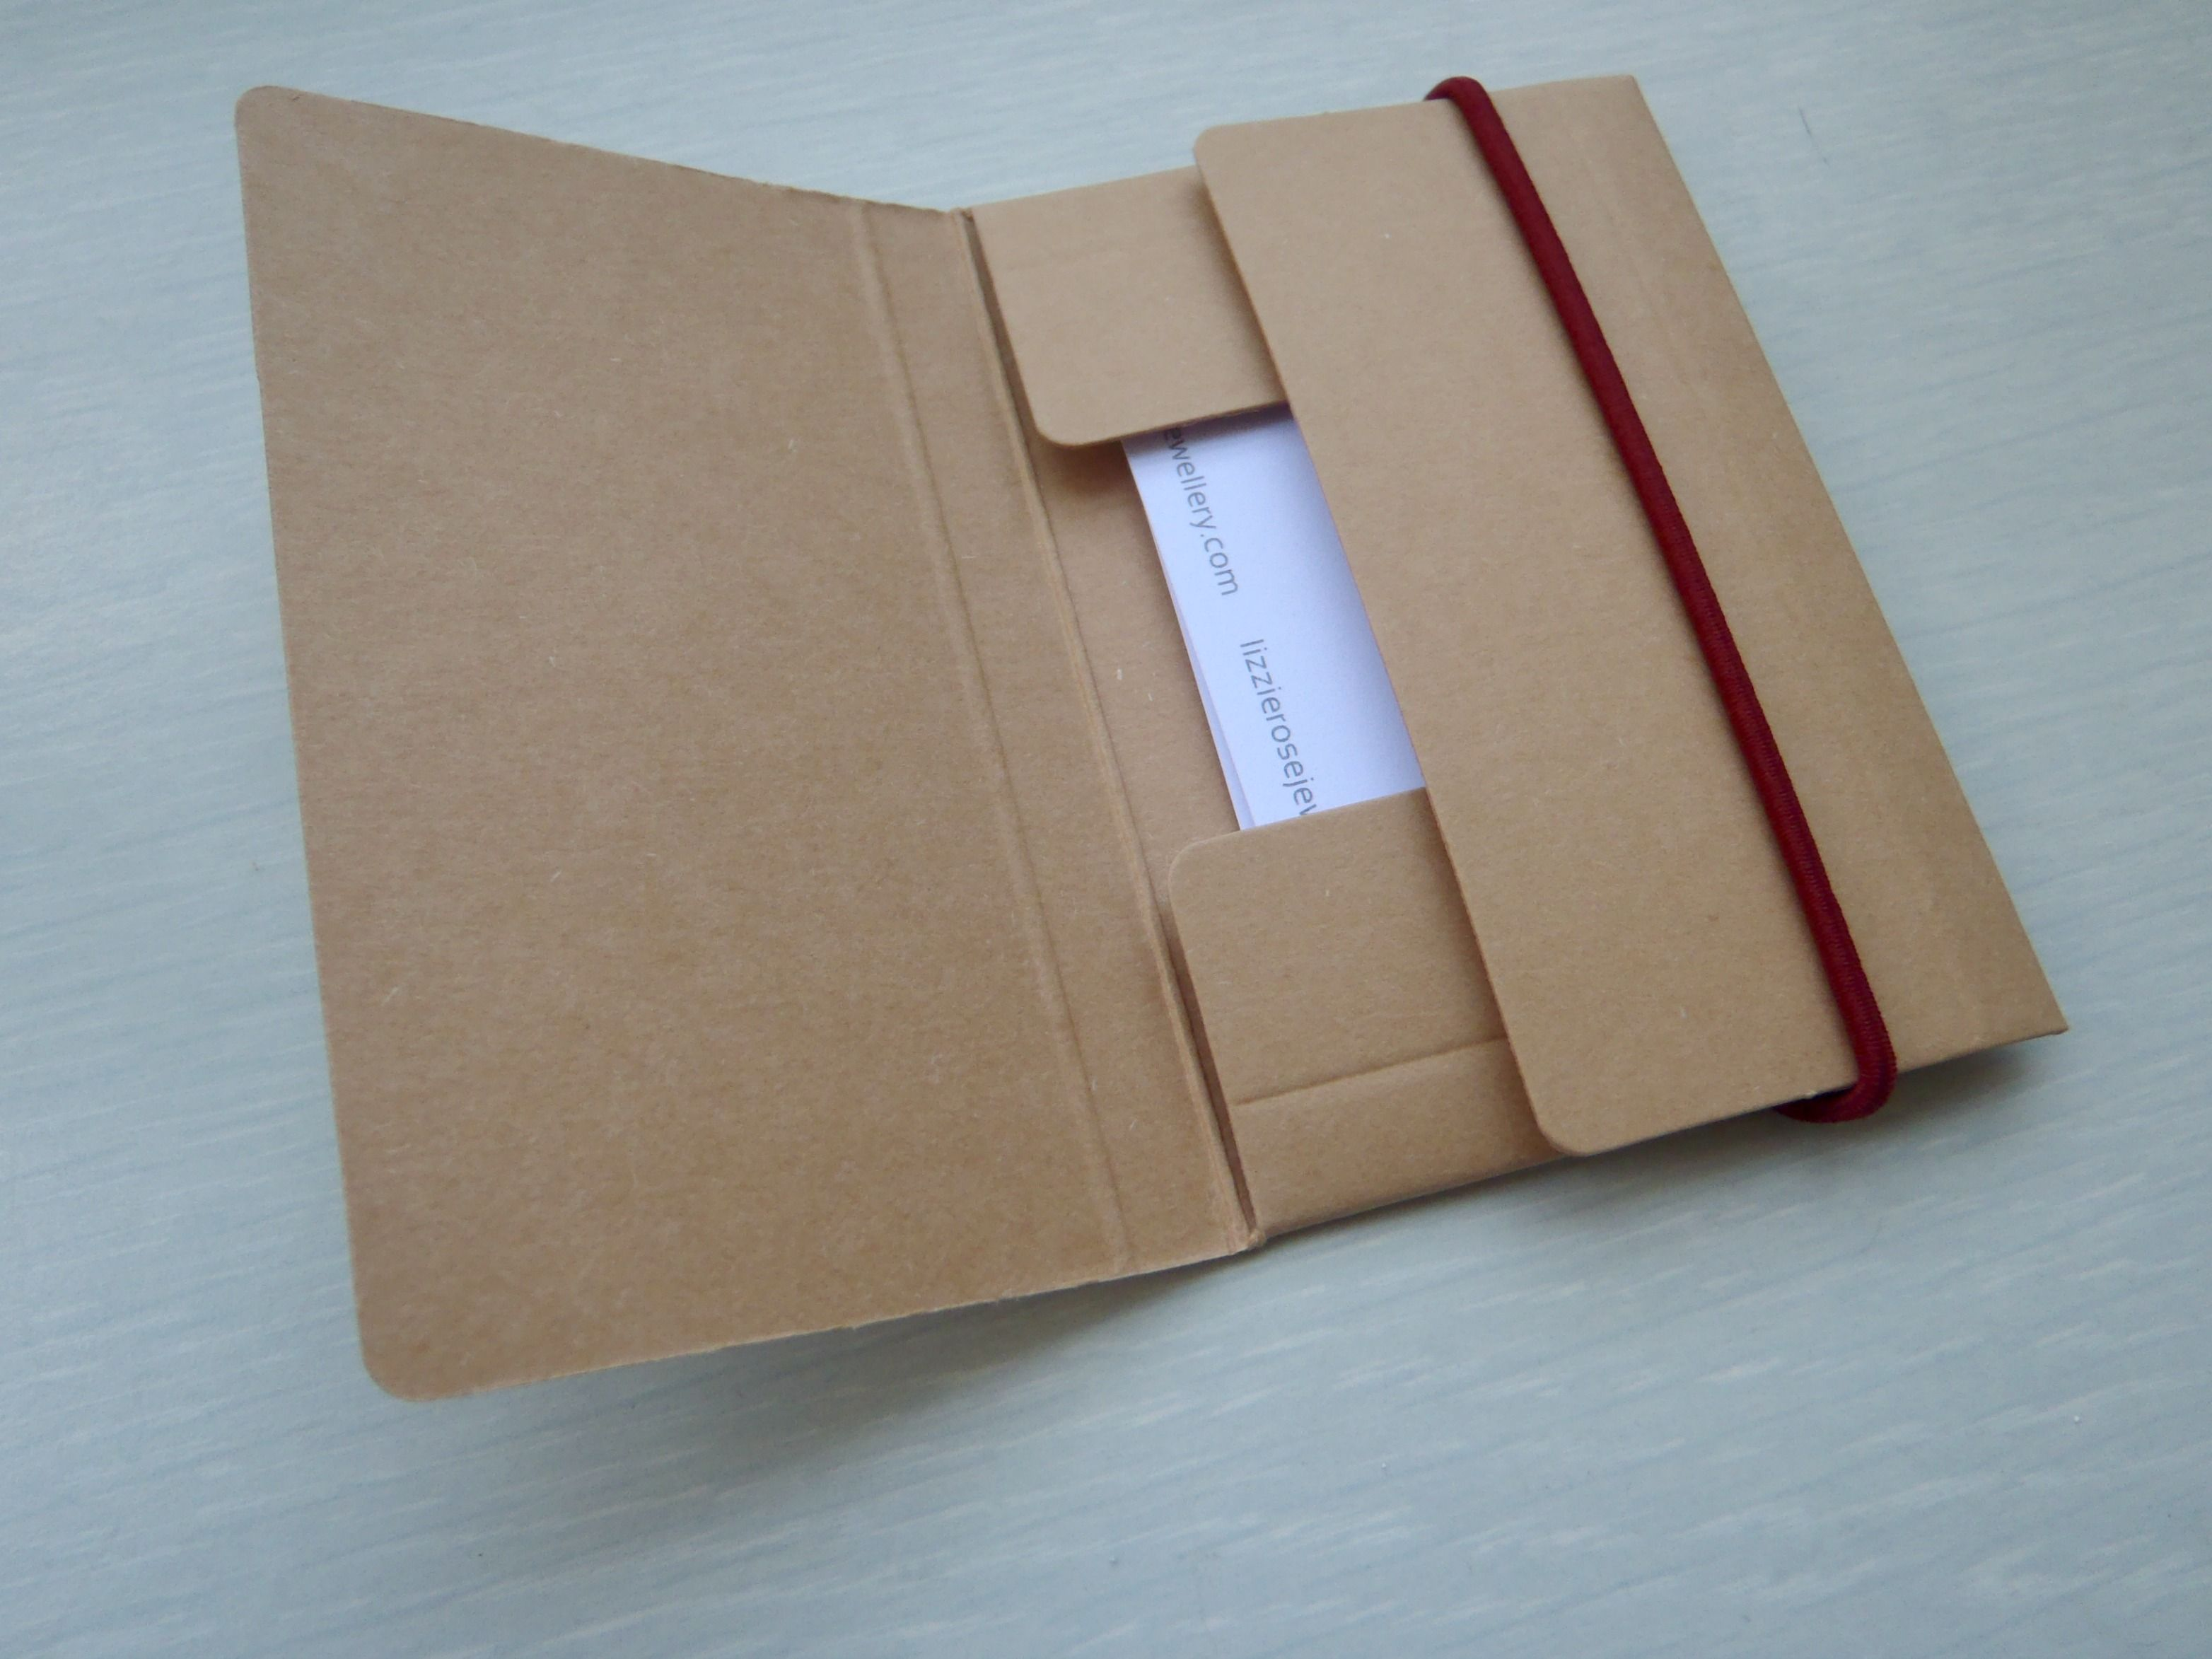 muji business card - Google Search | Packaging | Pinterest ...